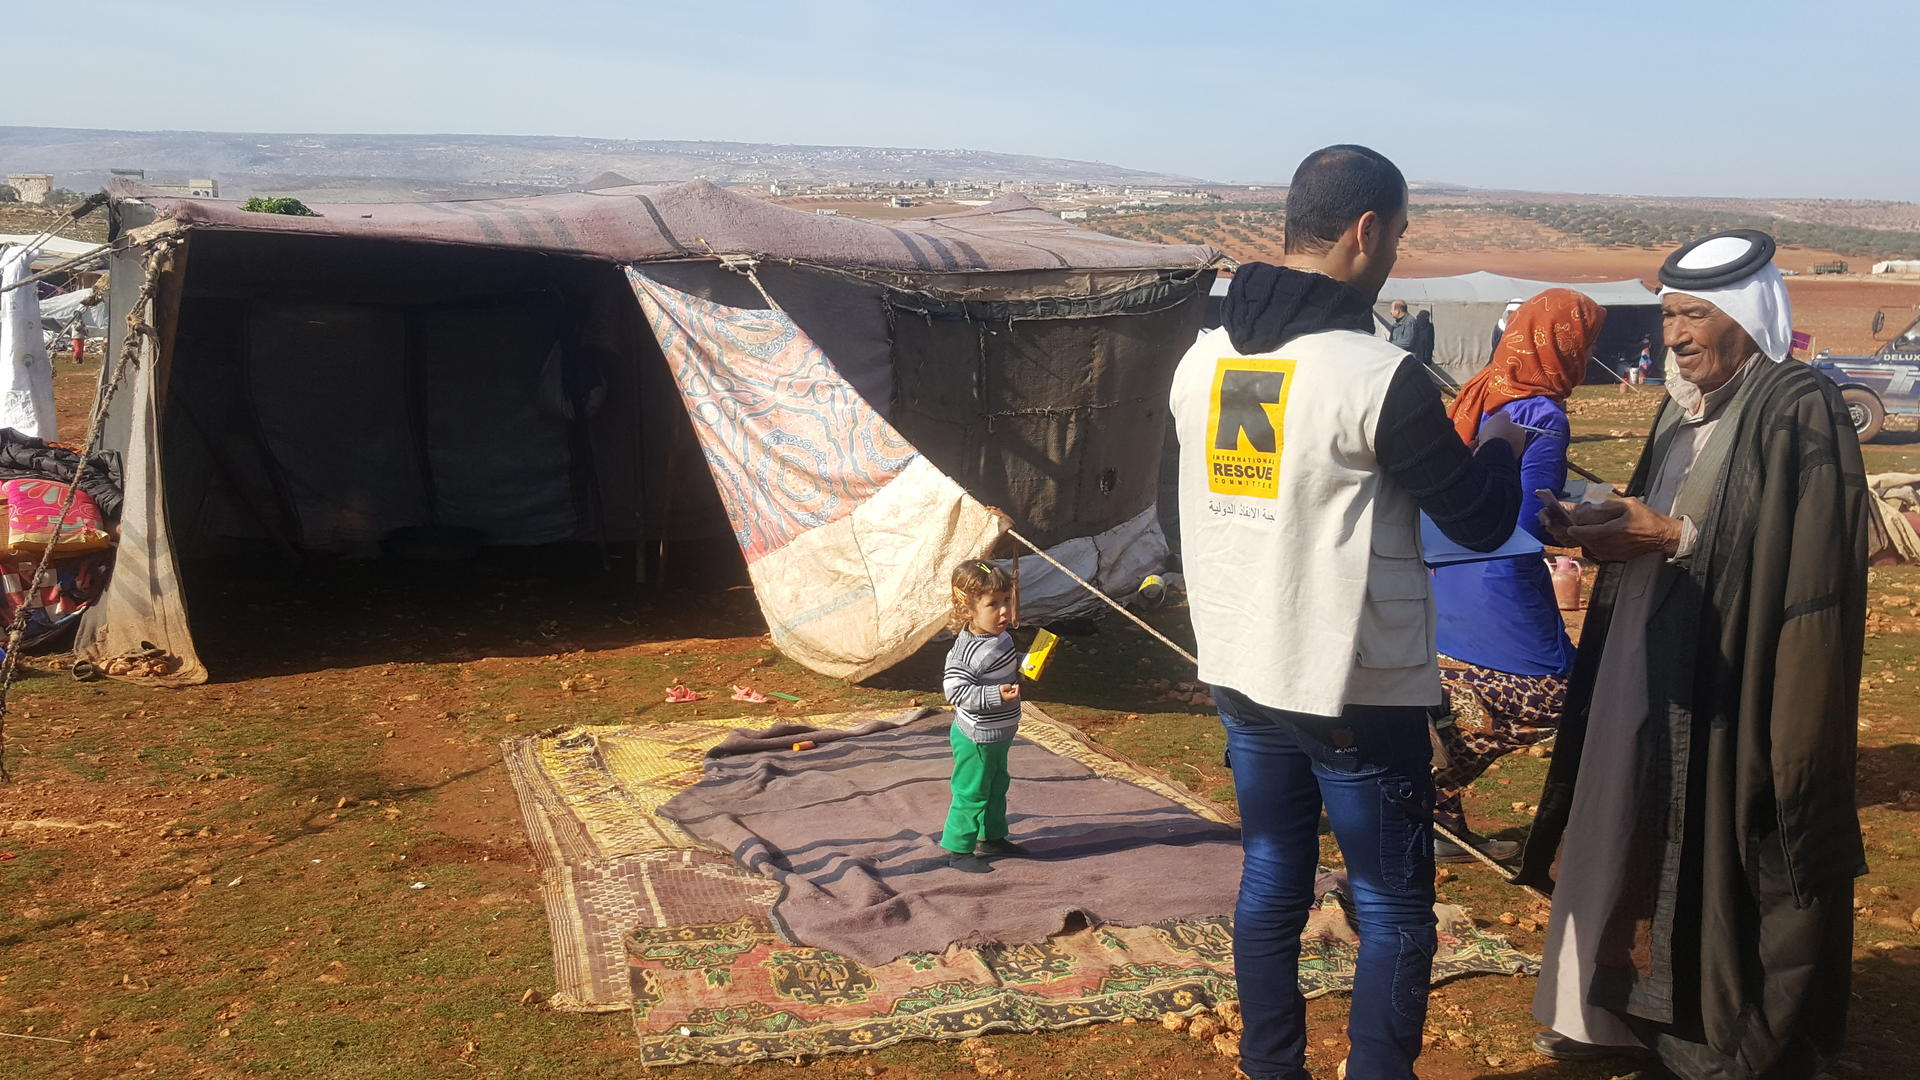 An aid worker speaks with a displaced Syrian man outside his family's tent